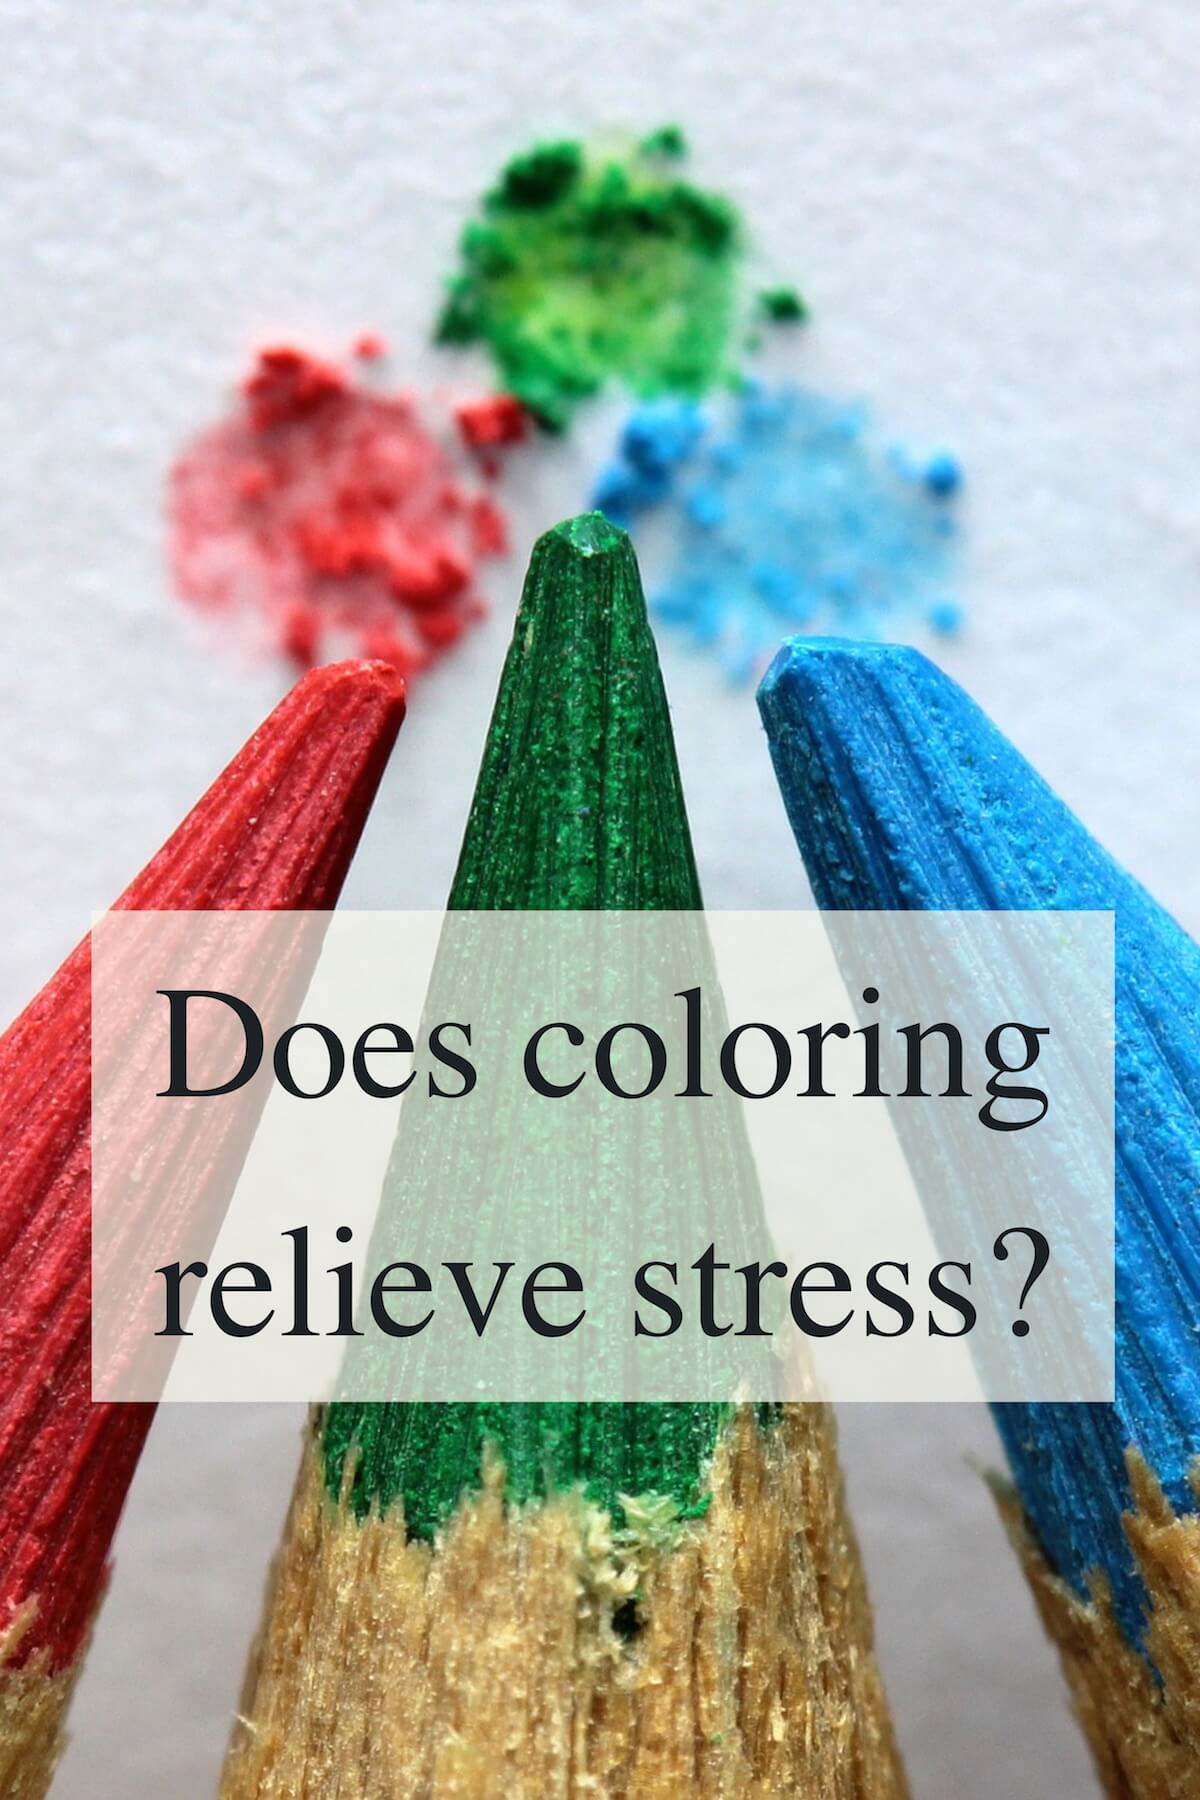 Does Coloring REALLY Relieve Stress?